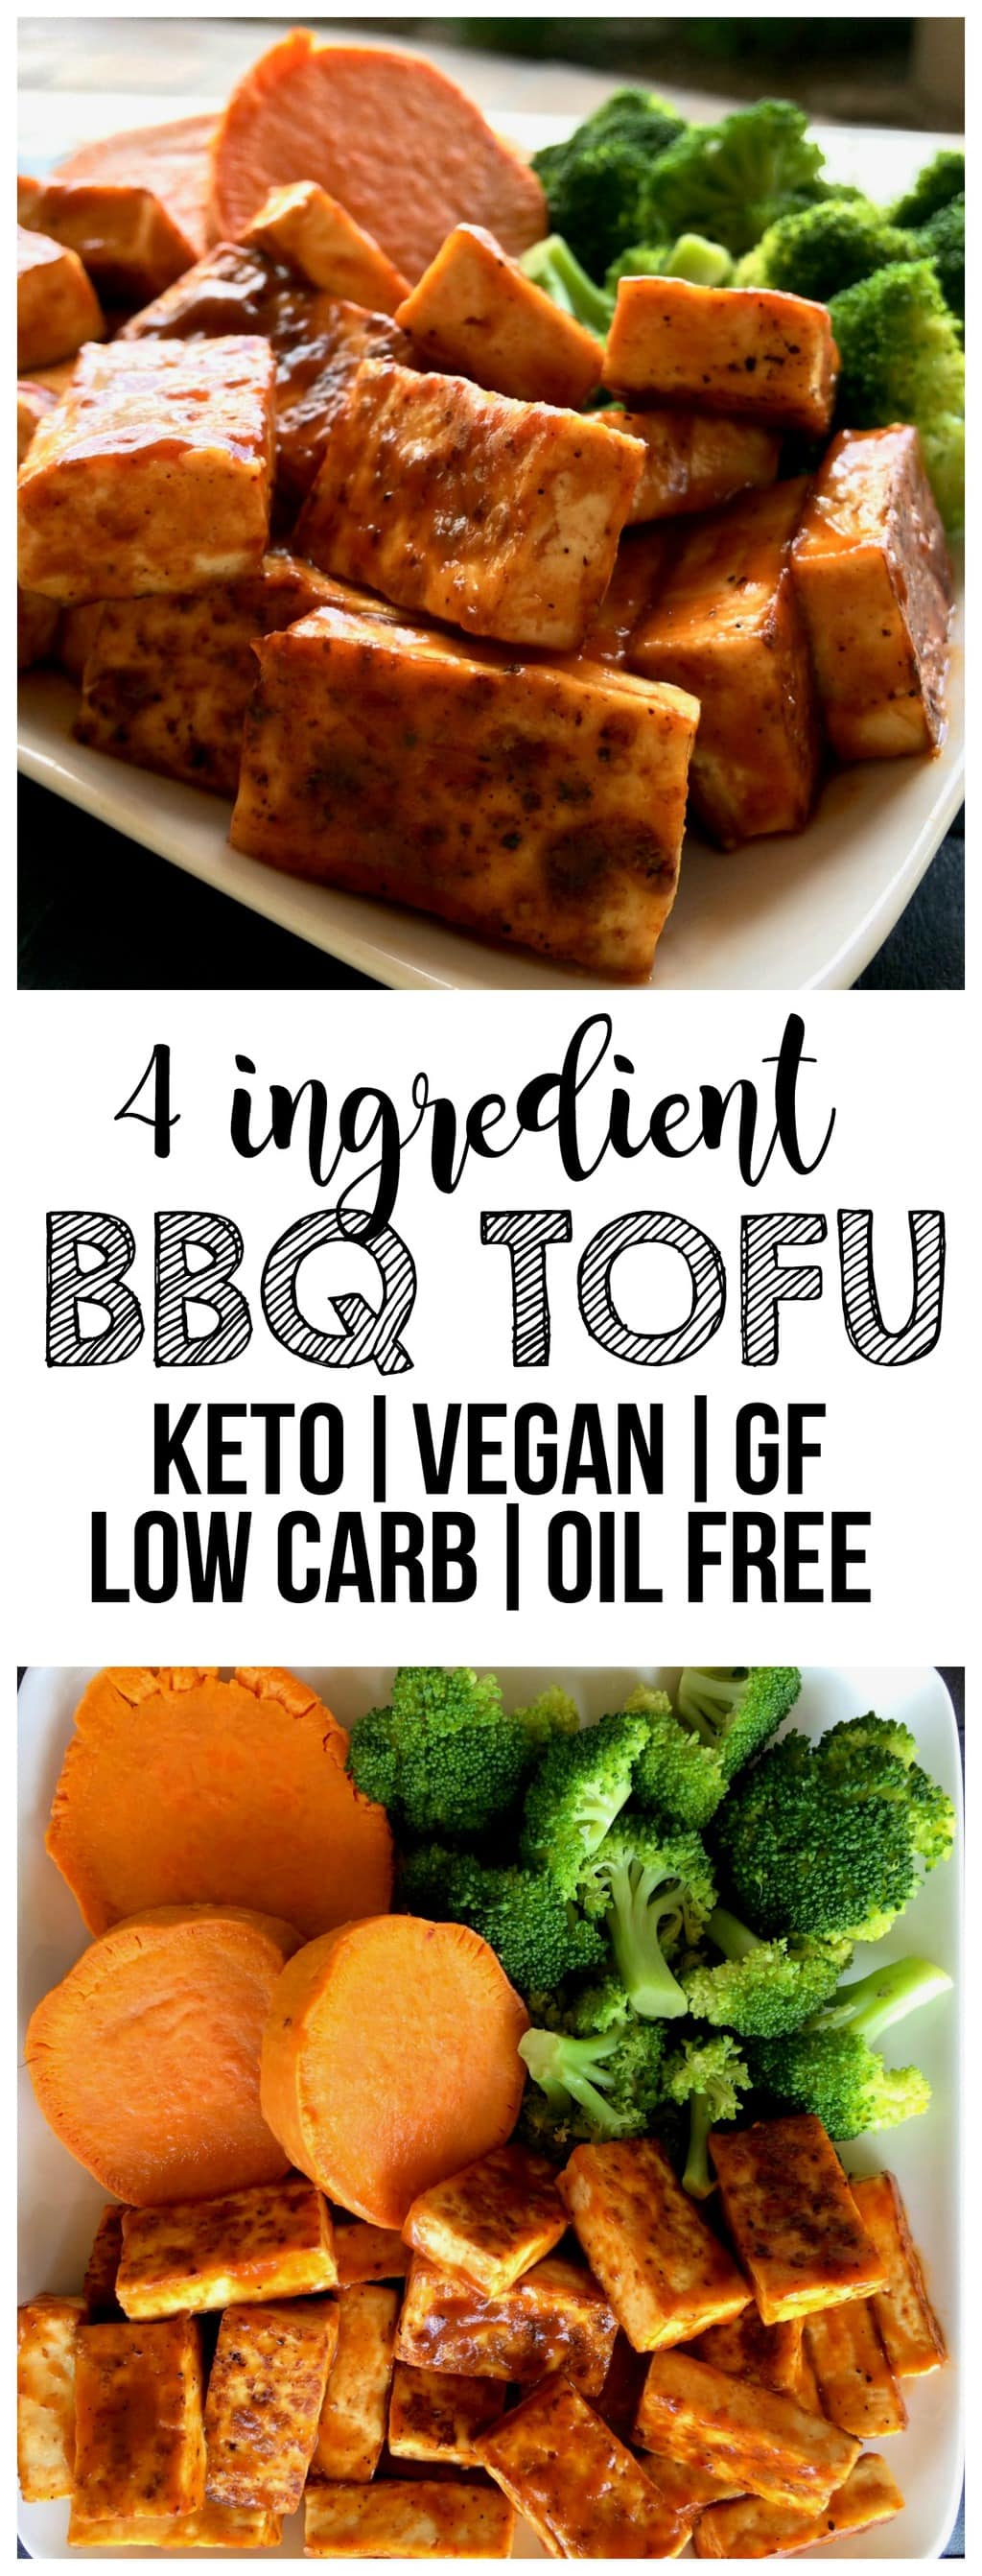 This Easy BBQ Tofu is totally delicious and so easy to make! It's vegan, gluten-free, dairy-free, keto, low-carb, oil-free, and high-protein. The perfect, vegan lunch or dinner!